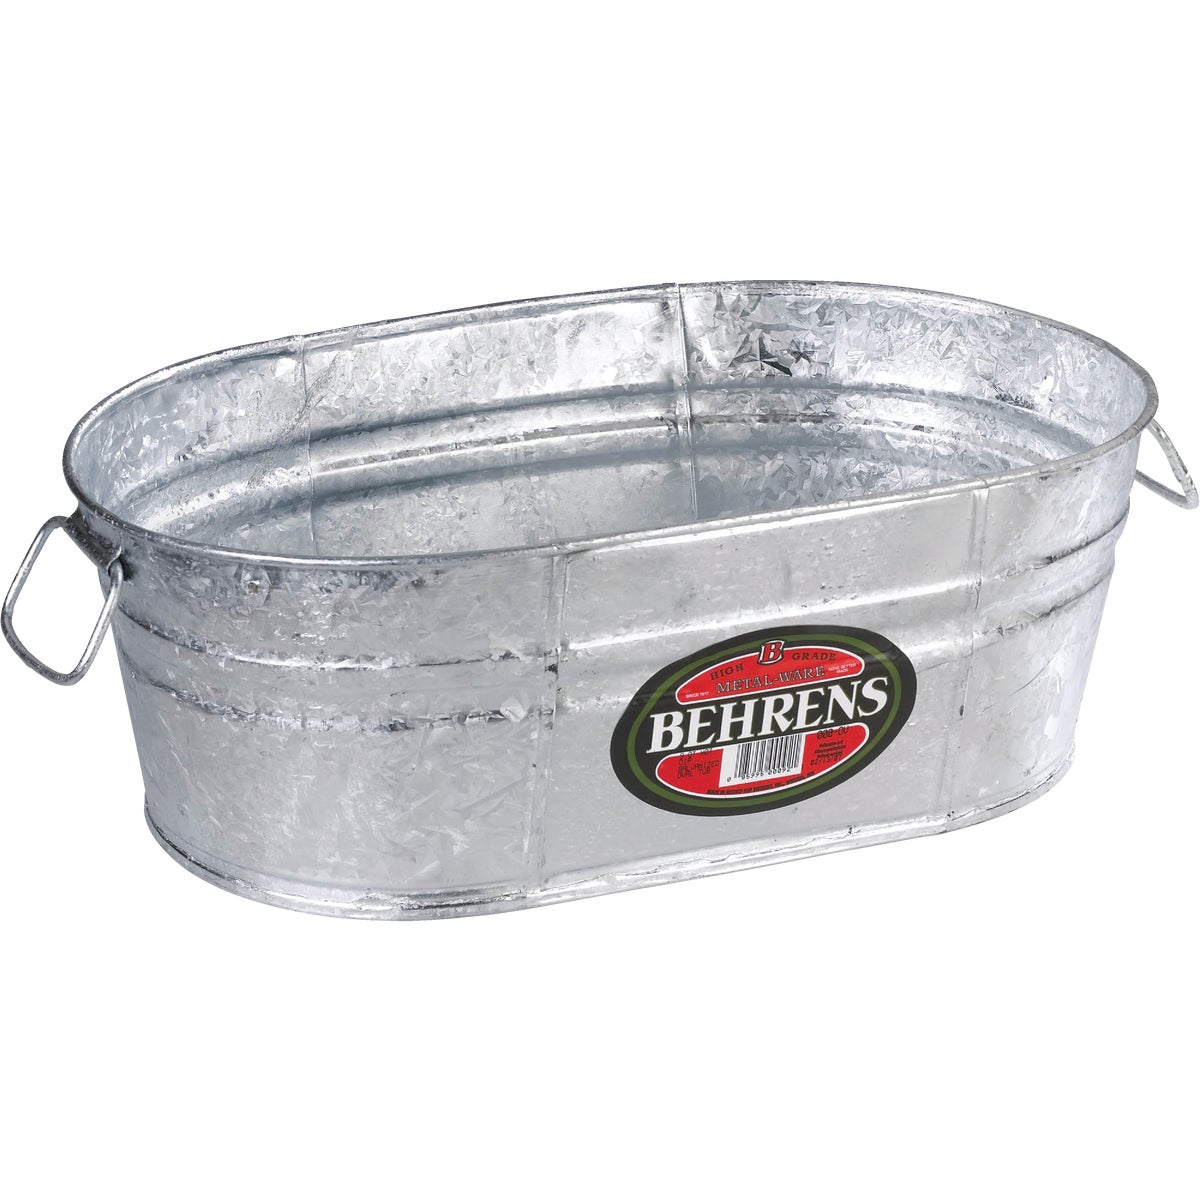 9QT HOT DIPPED OVAL TUB - 000-OV by Behrens Mfg